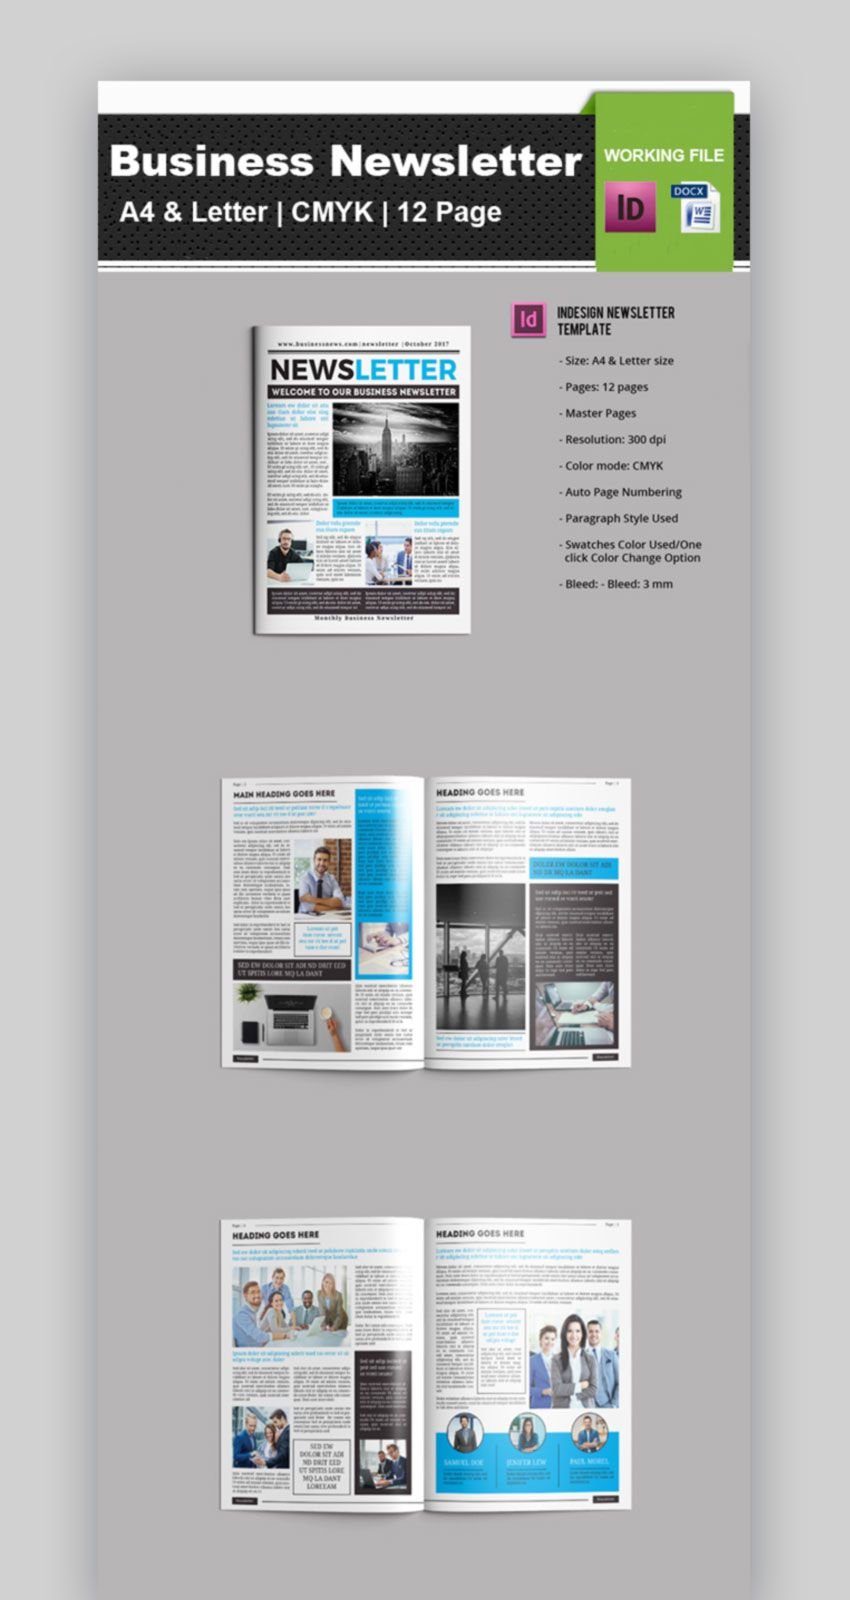 009 Astounding Free Microsoft Word Newsletter Template High Resolution  Templates Download M MedicalFull